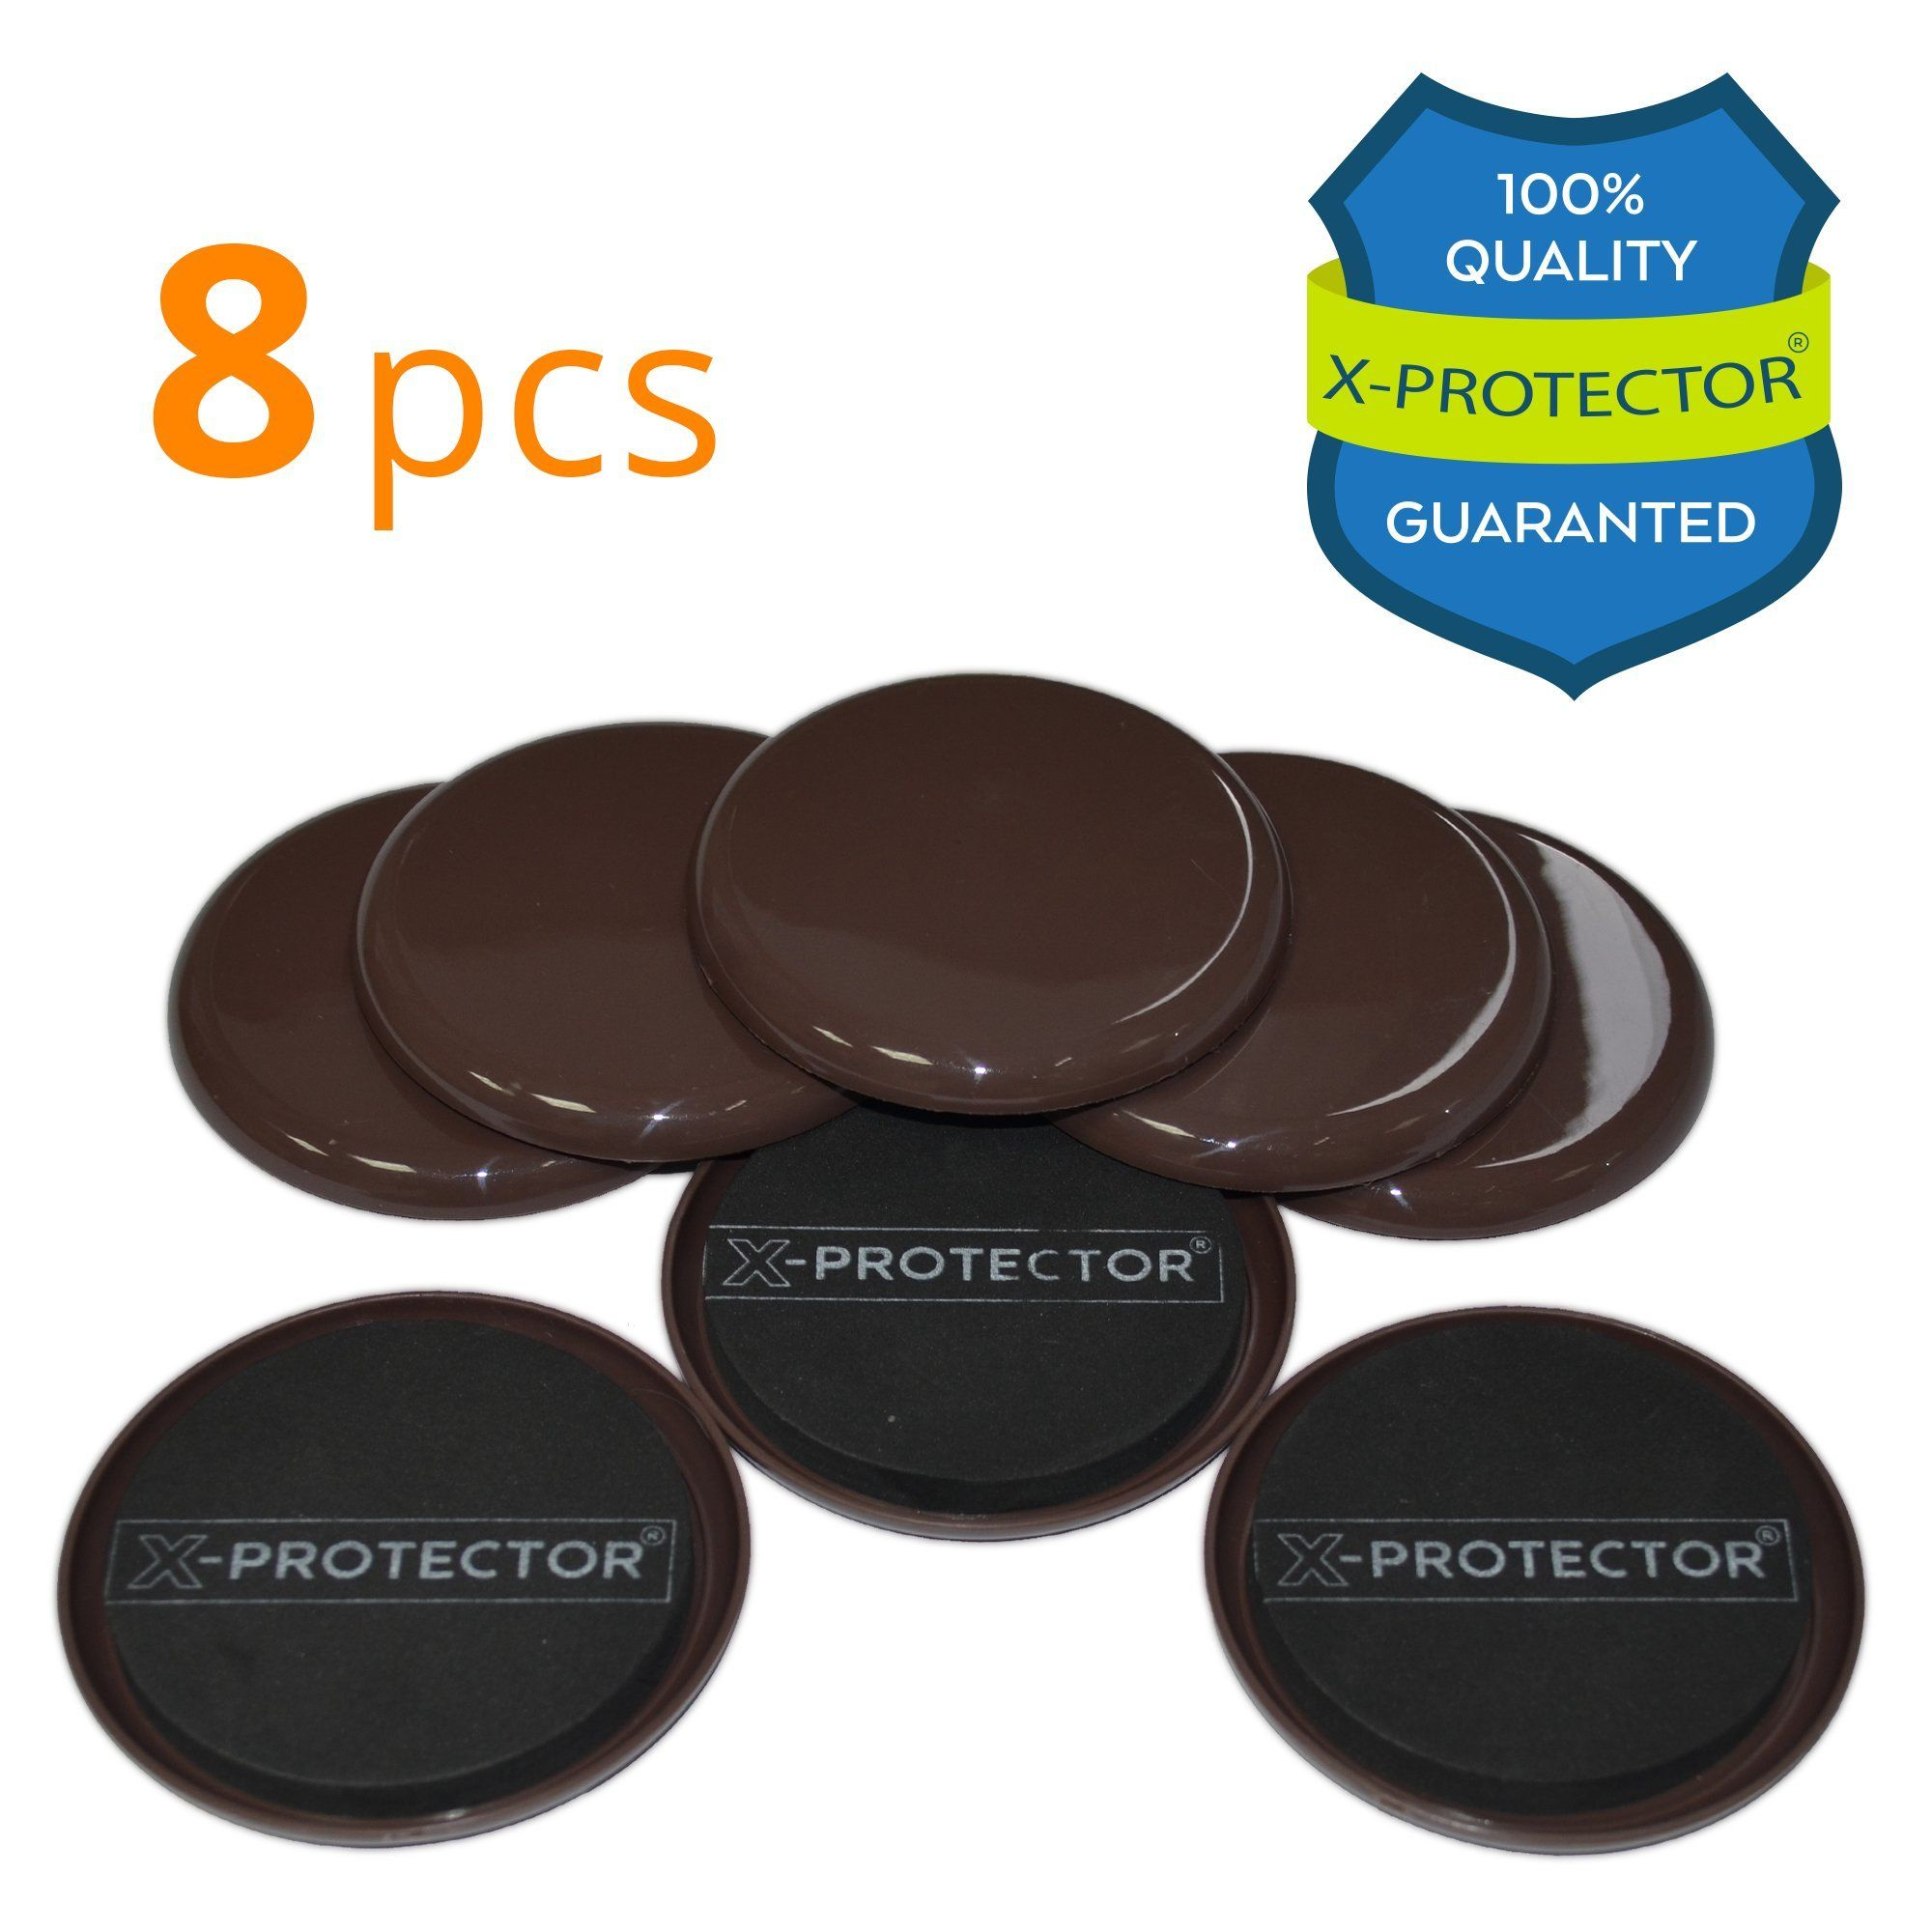 Attirant Furniture Sliders For Carpet X PROTECTOR U2013 BEST 8 Pack 3 1/2 Inch Moving  Pads   Sliders For Furniture. Move Your Furniture Easy With Reusable  Furniture ...